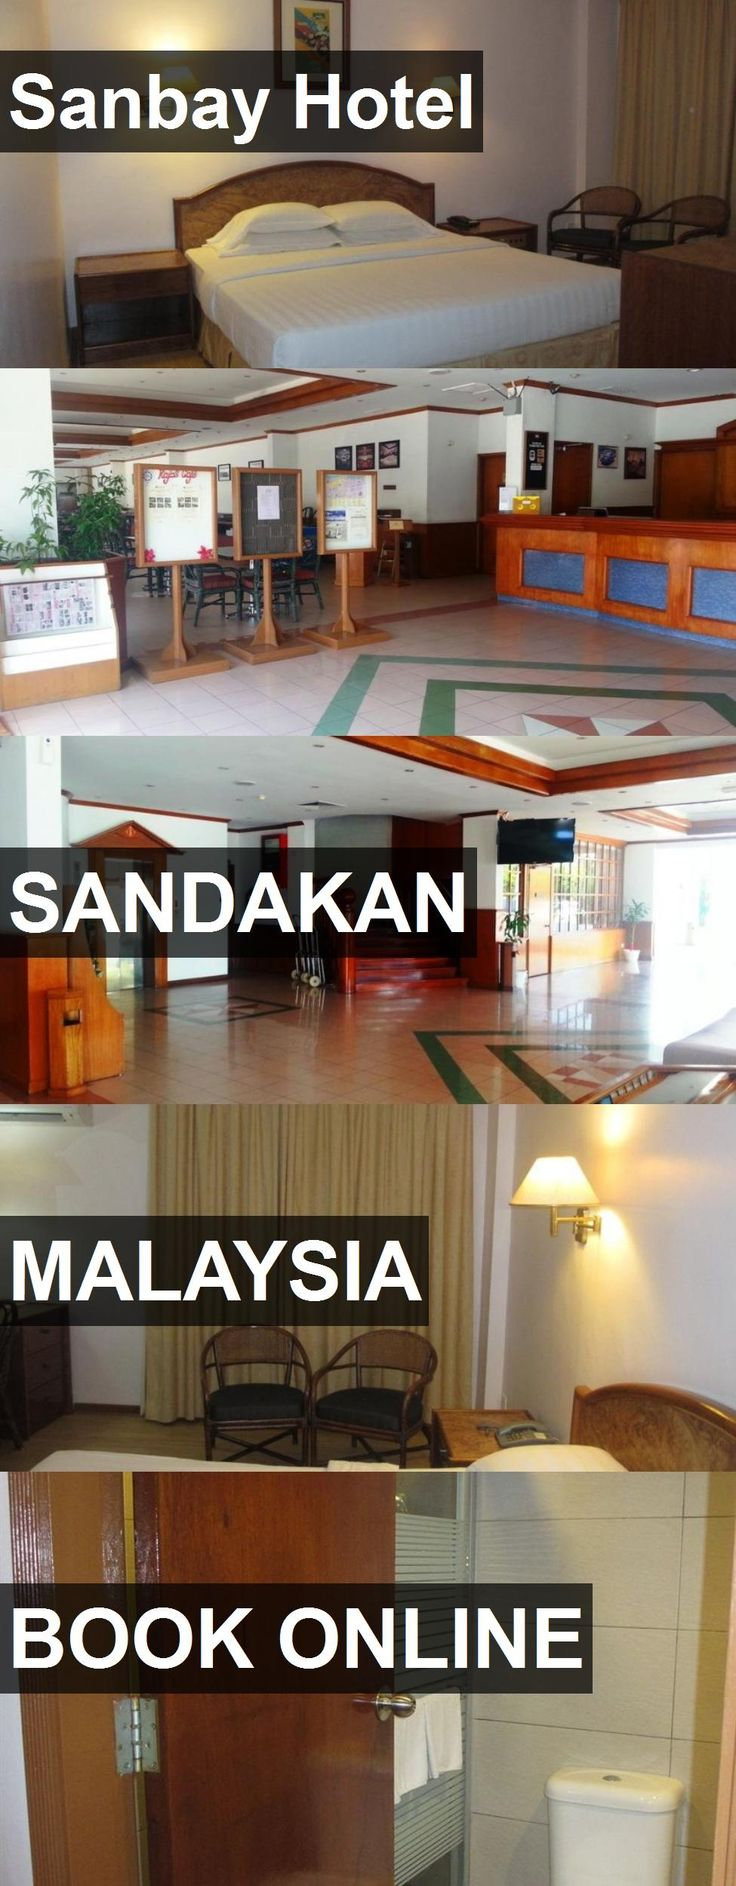 Sanbay Hotel in Sandakan, Malaysia. For more information, photos, reviews and best prices please follow the link. #Malaysia #Sandakan #travel #vacation #hotel